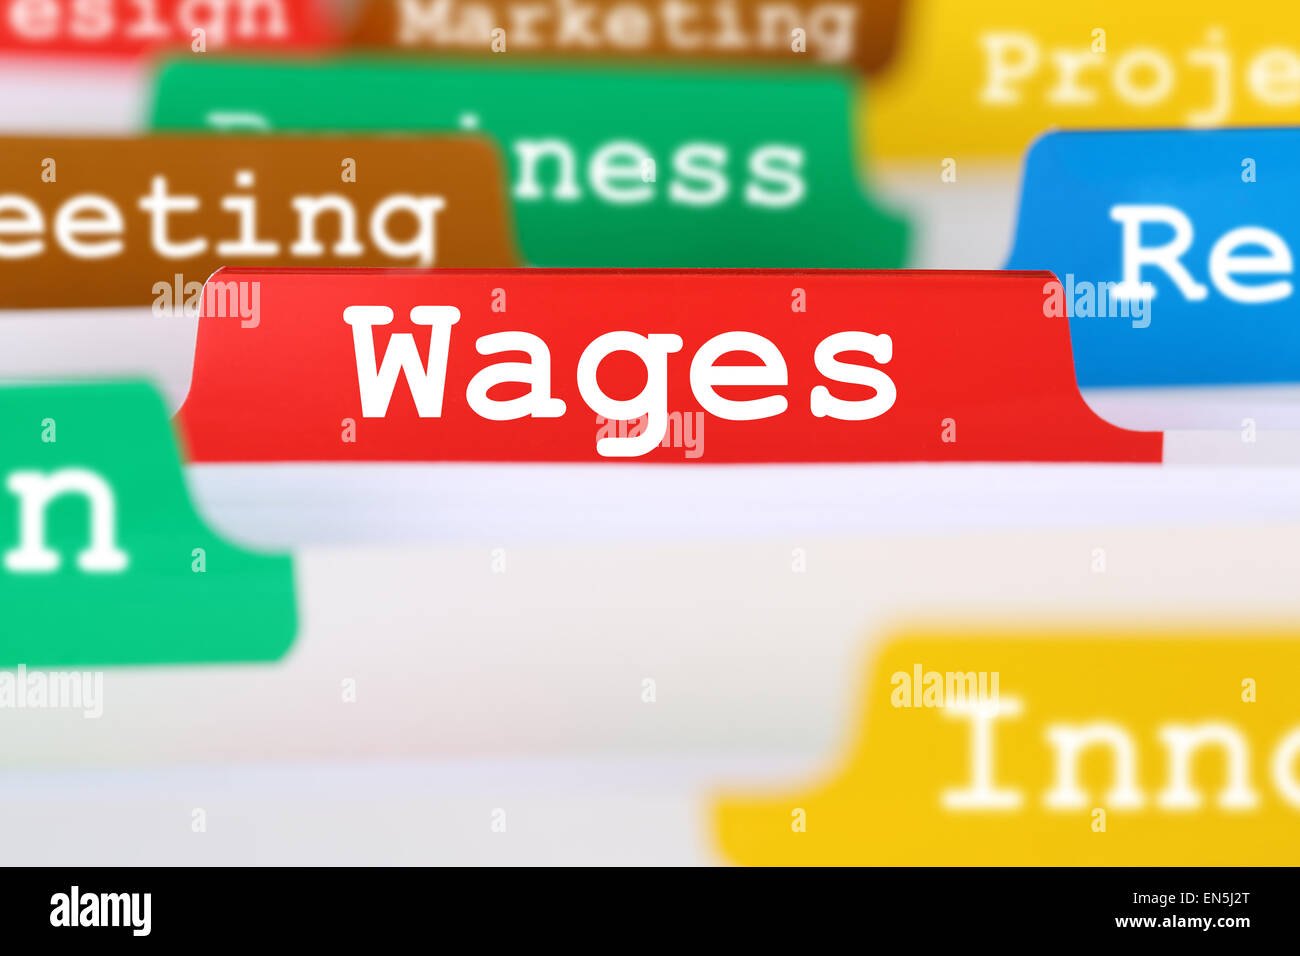 Employee wages and salary financial business concept register in documents - Stock Image